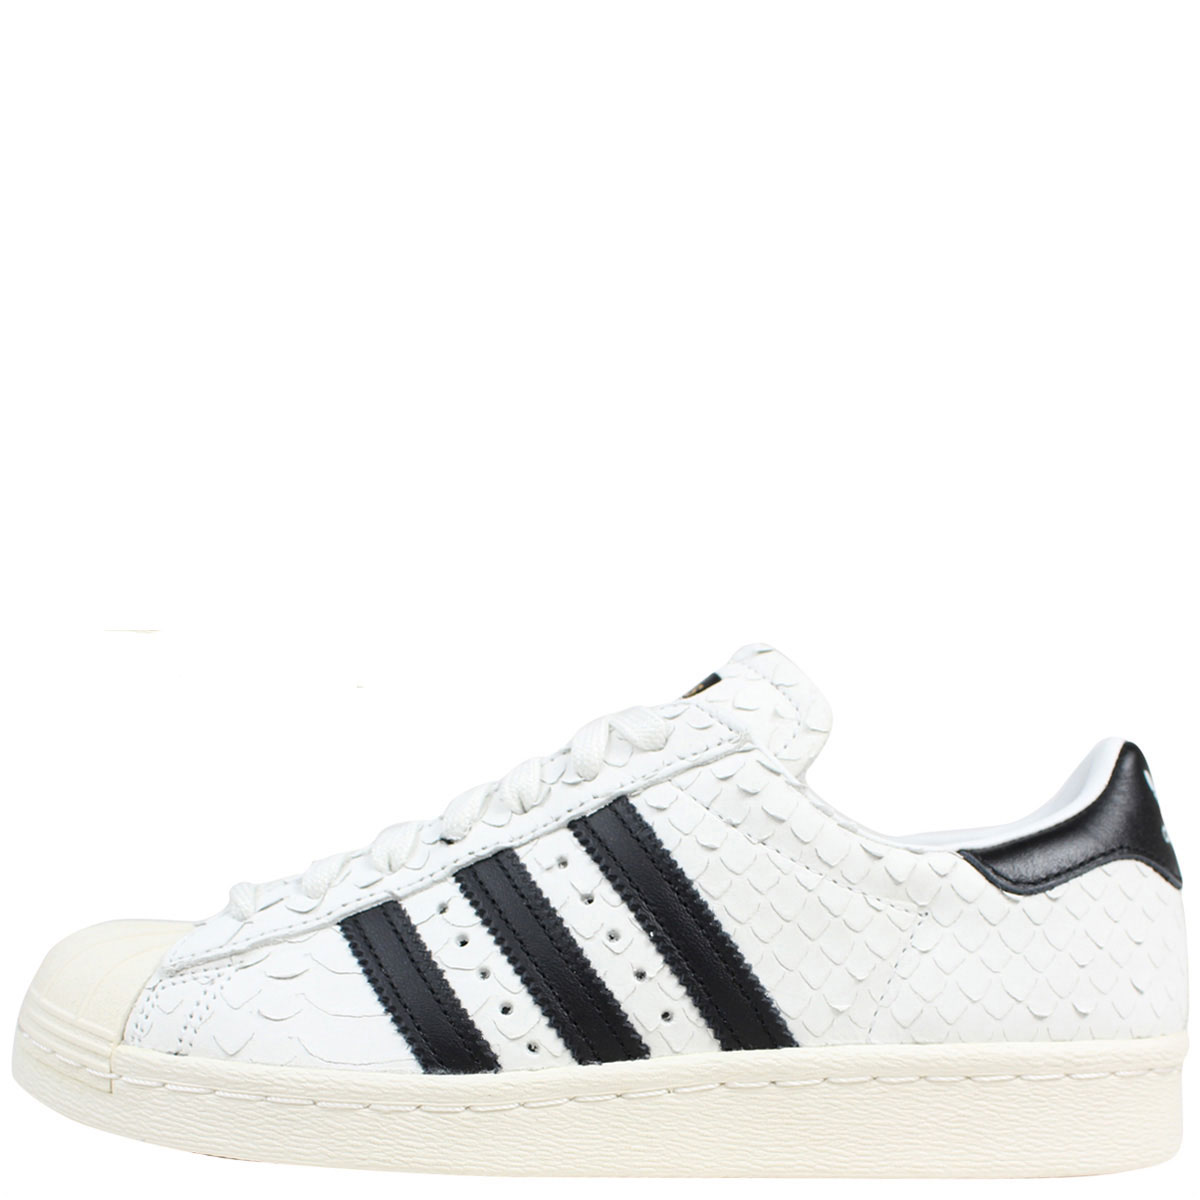 393a0974aa adidas Originals adidas originals superstar sneakers Womens SUPERSTAR 80S W  S76414 shoes white ...